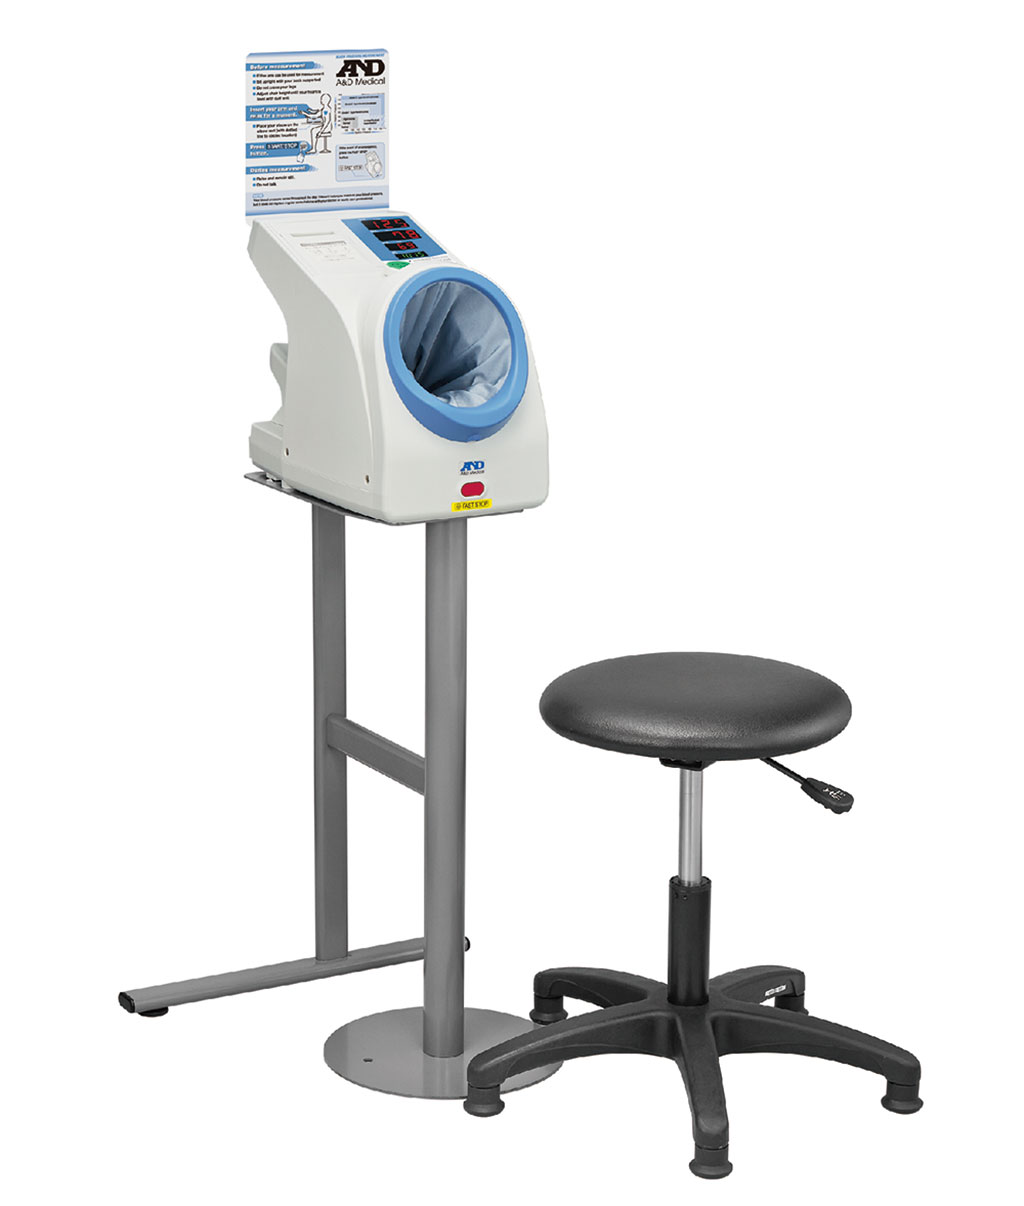 The TM-2657P automatic oscillometric BP device for waiting rooms (Photo courtesy of A&D)